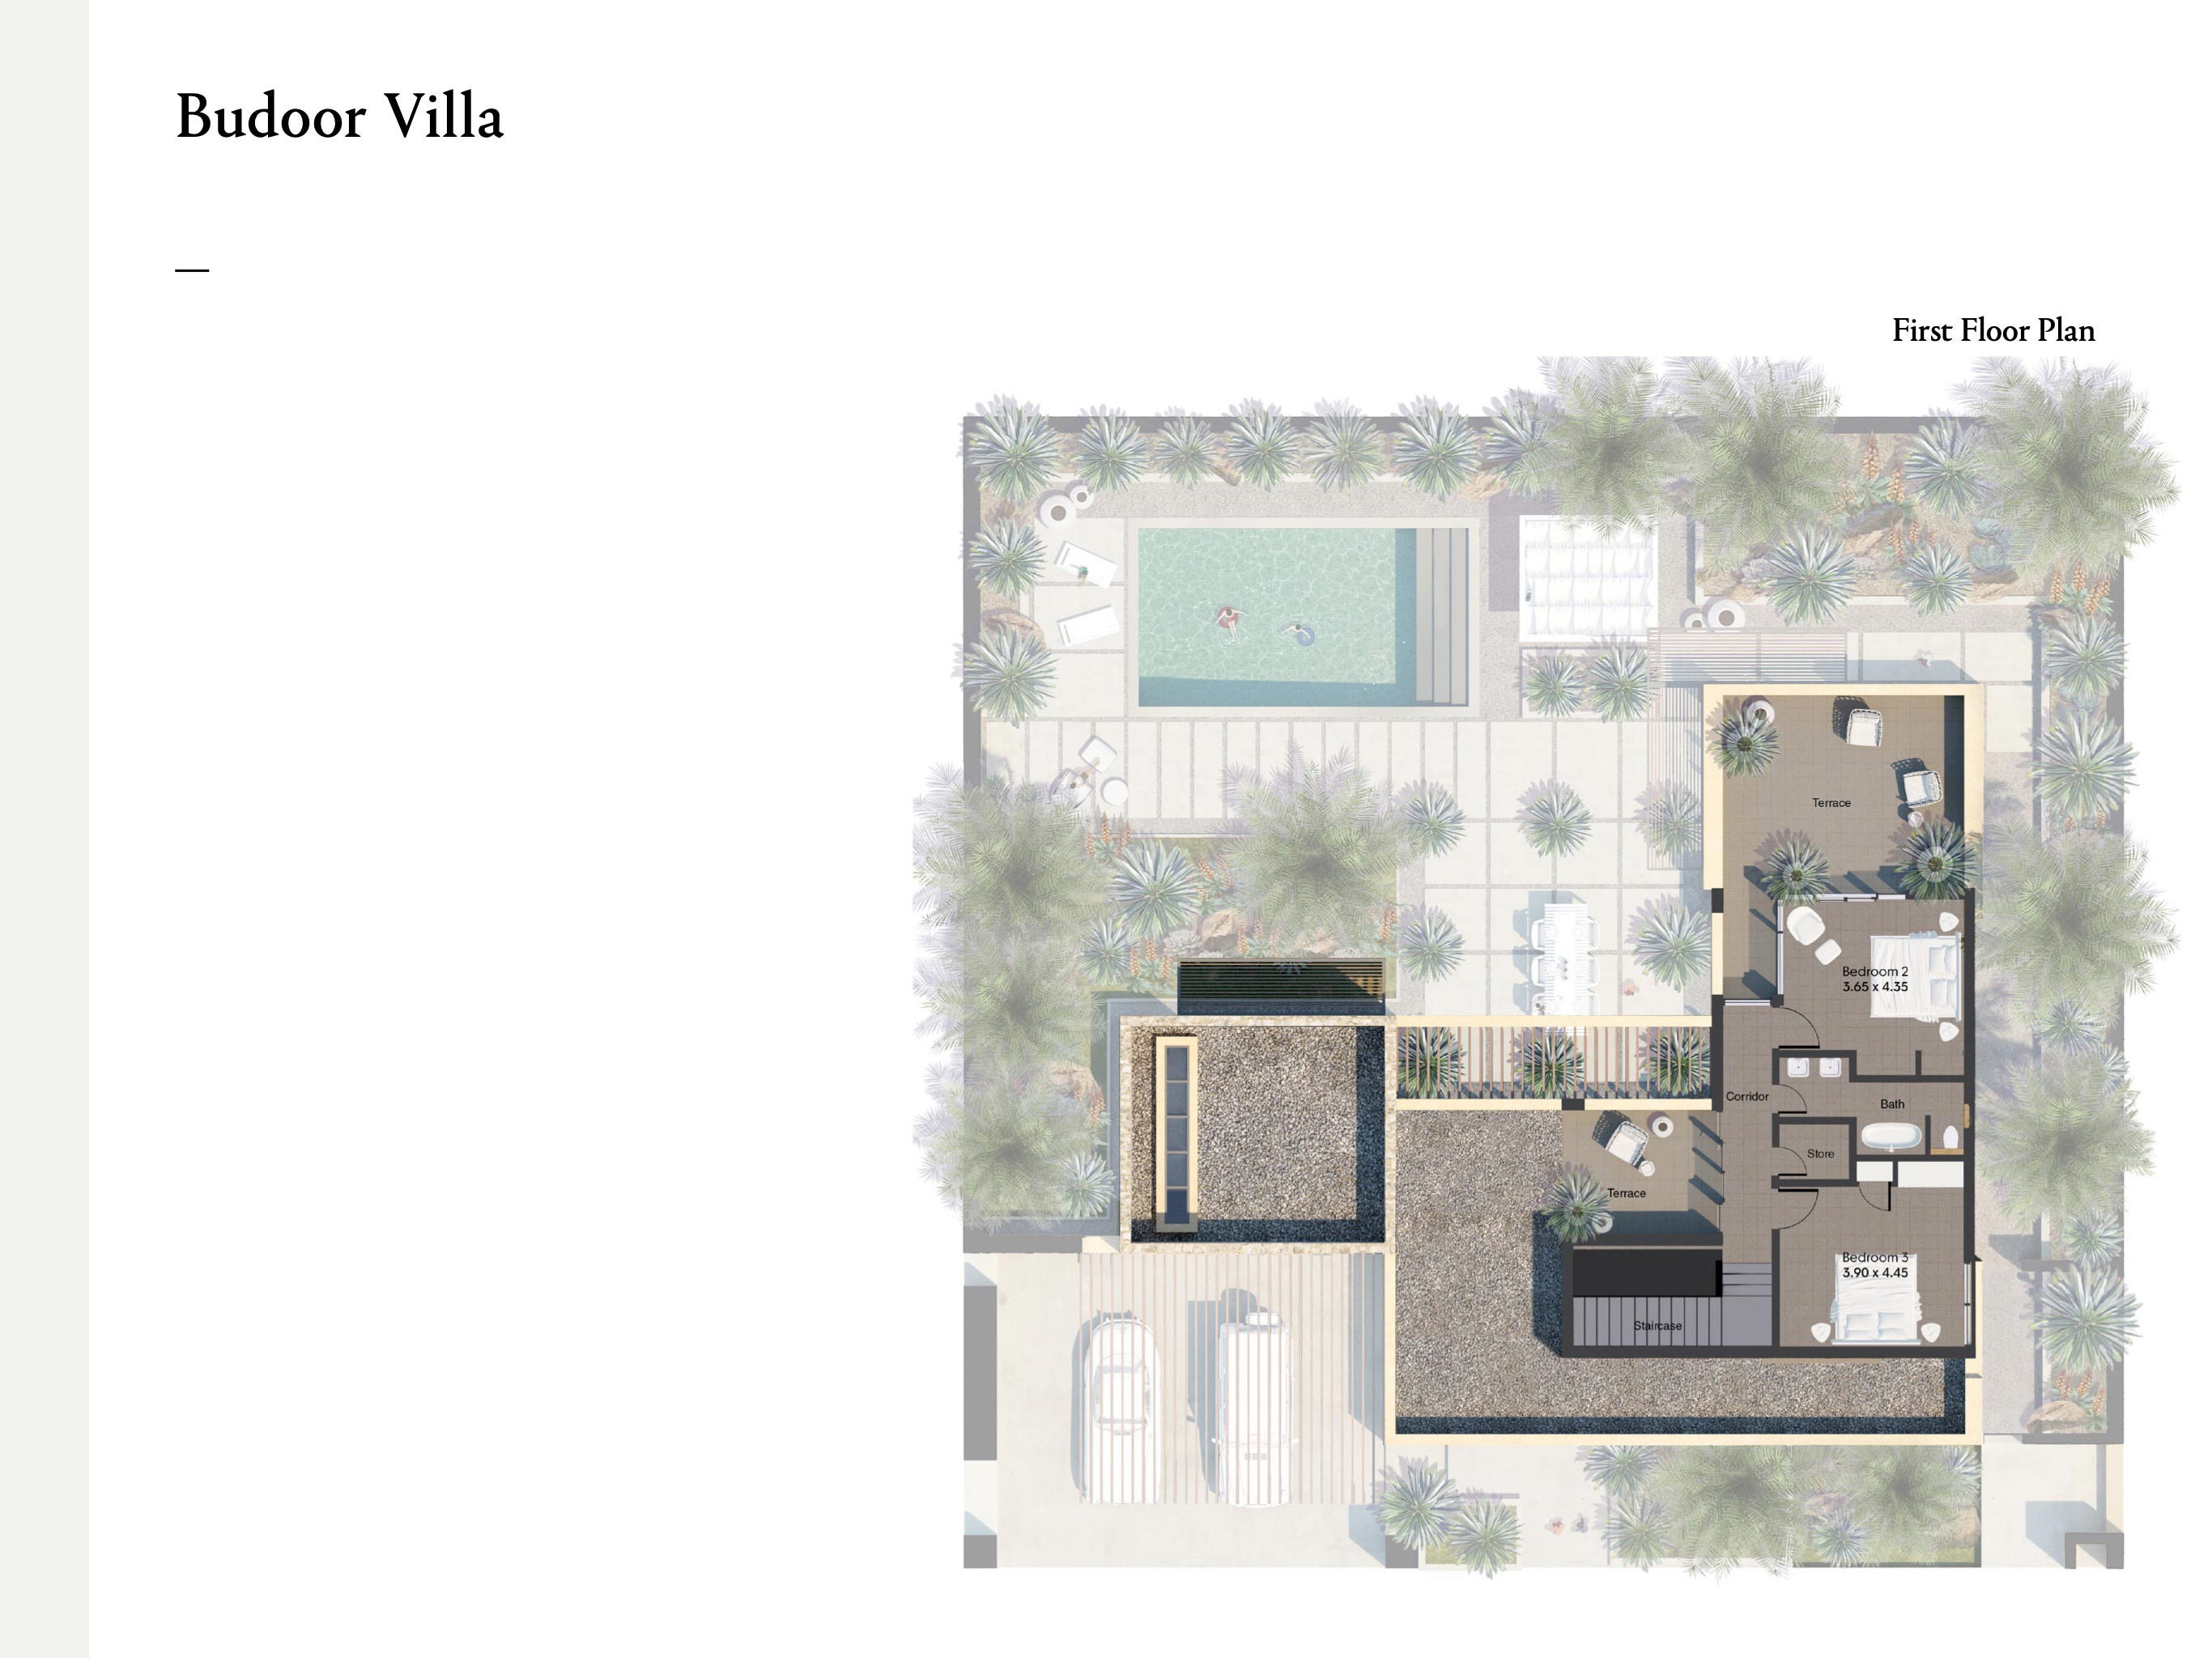 Budoor Villa - 7 Bedroom with a size area of 830 sqm